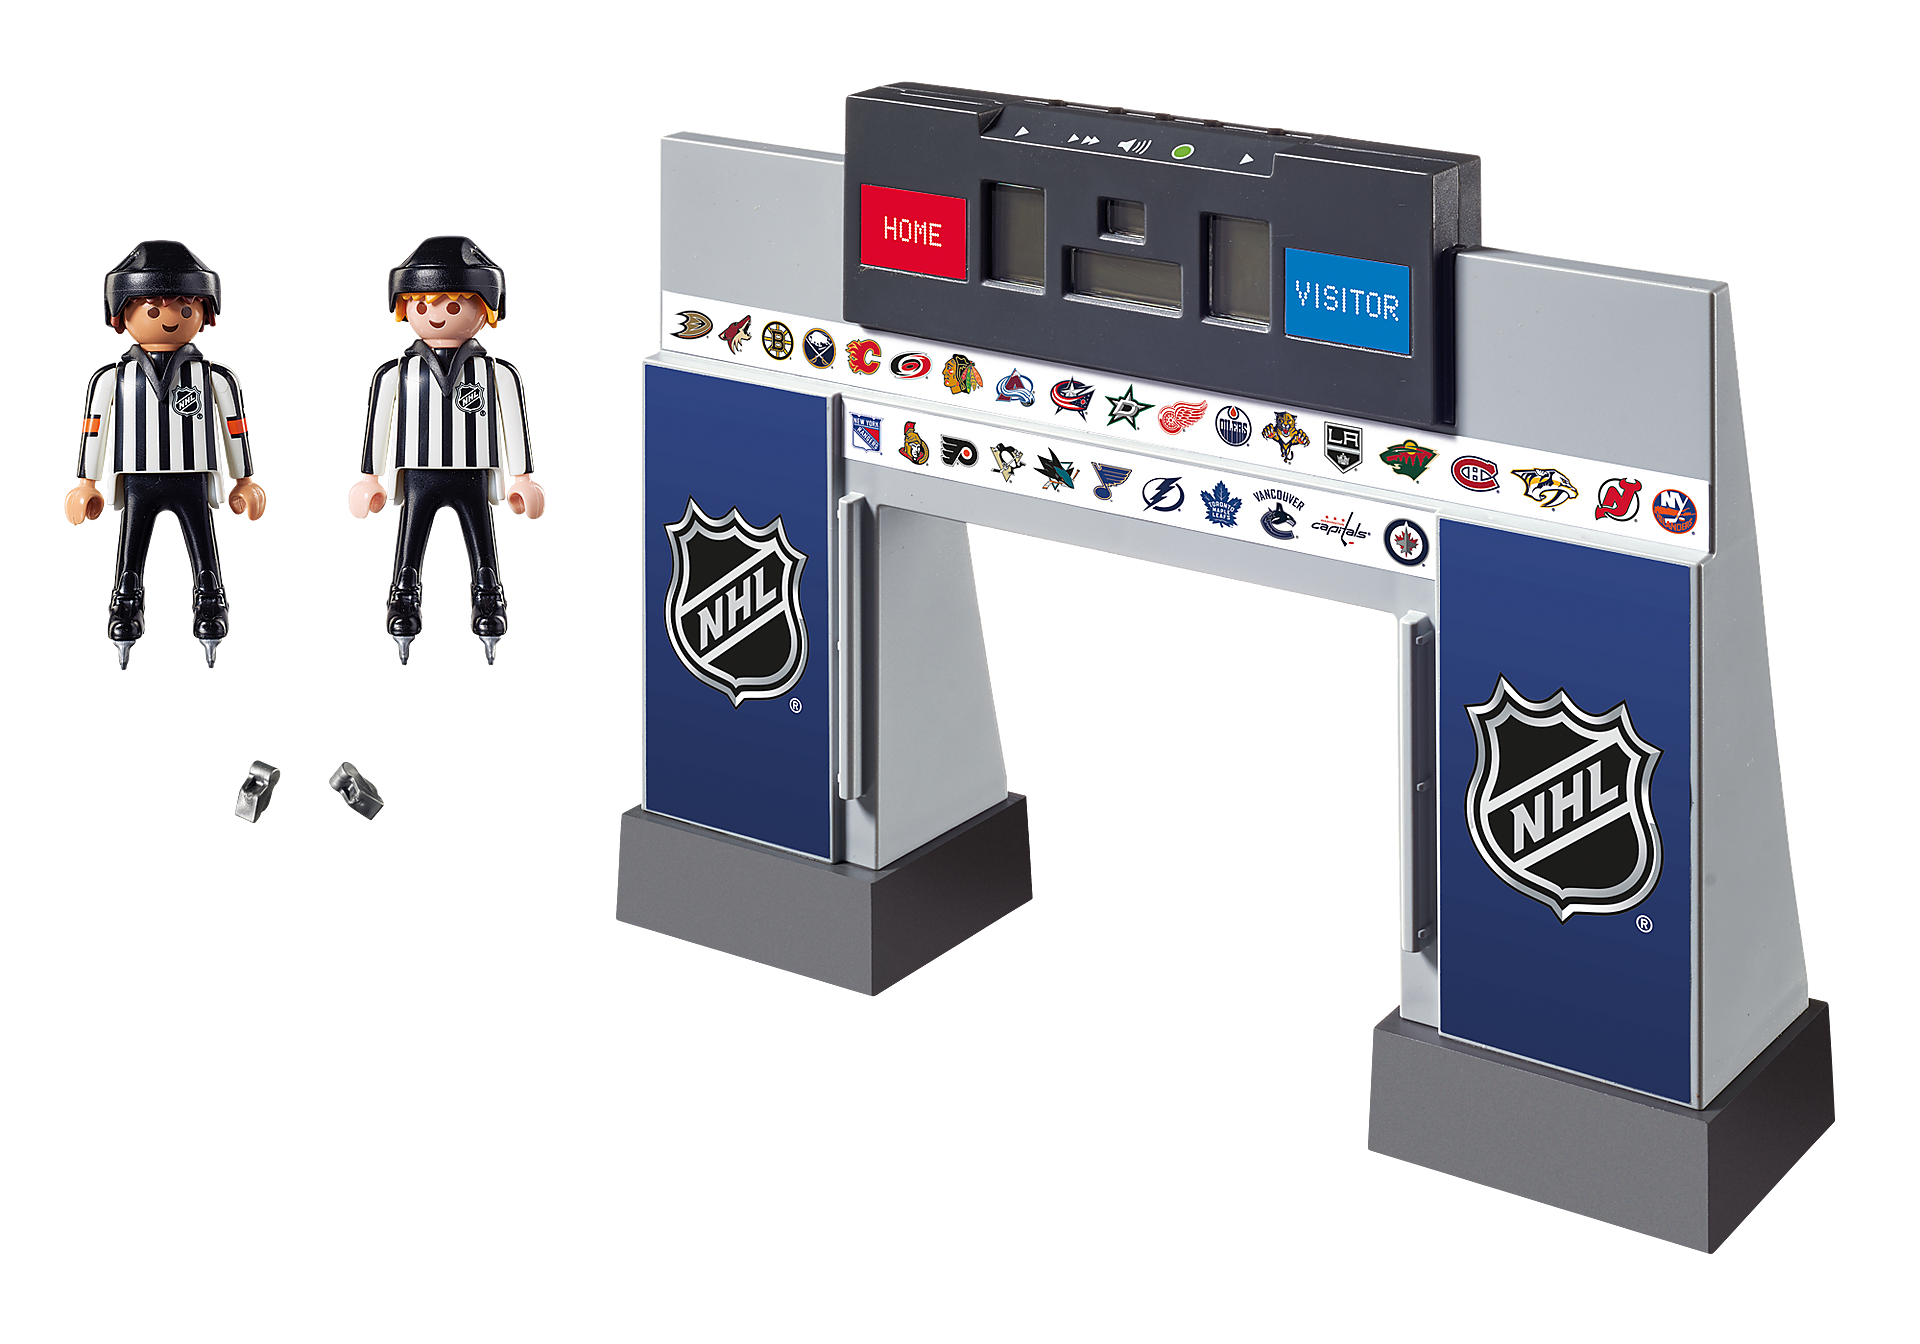 9016 NHL® Score Clock  with 2 Referees zoom image3